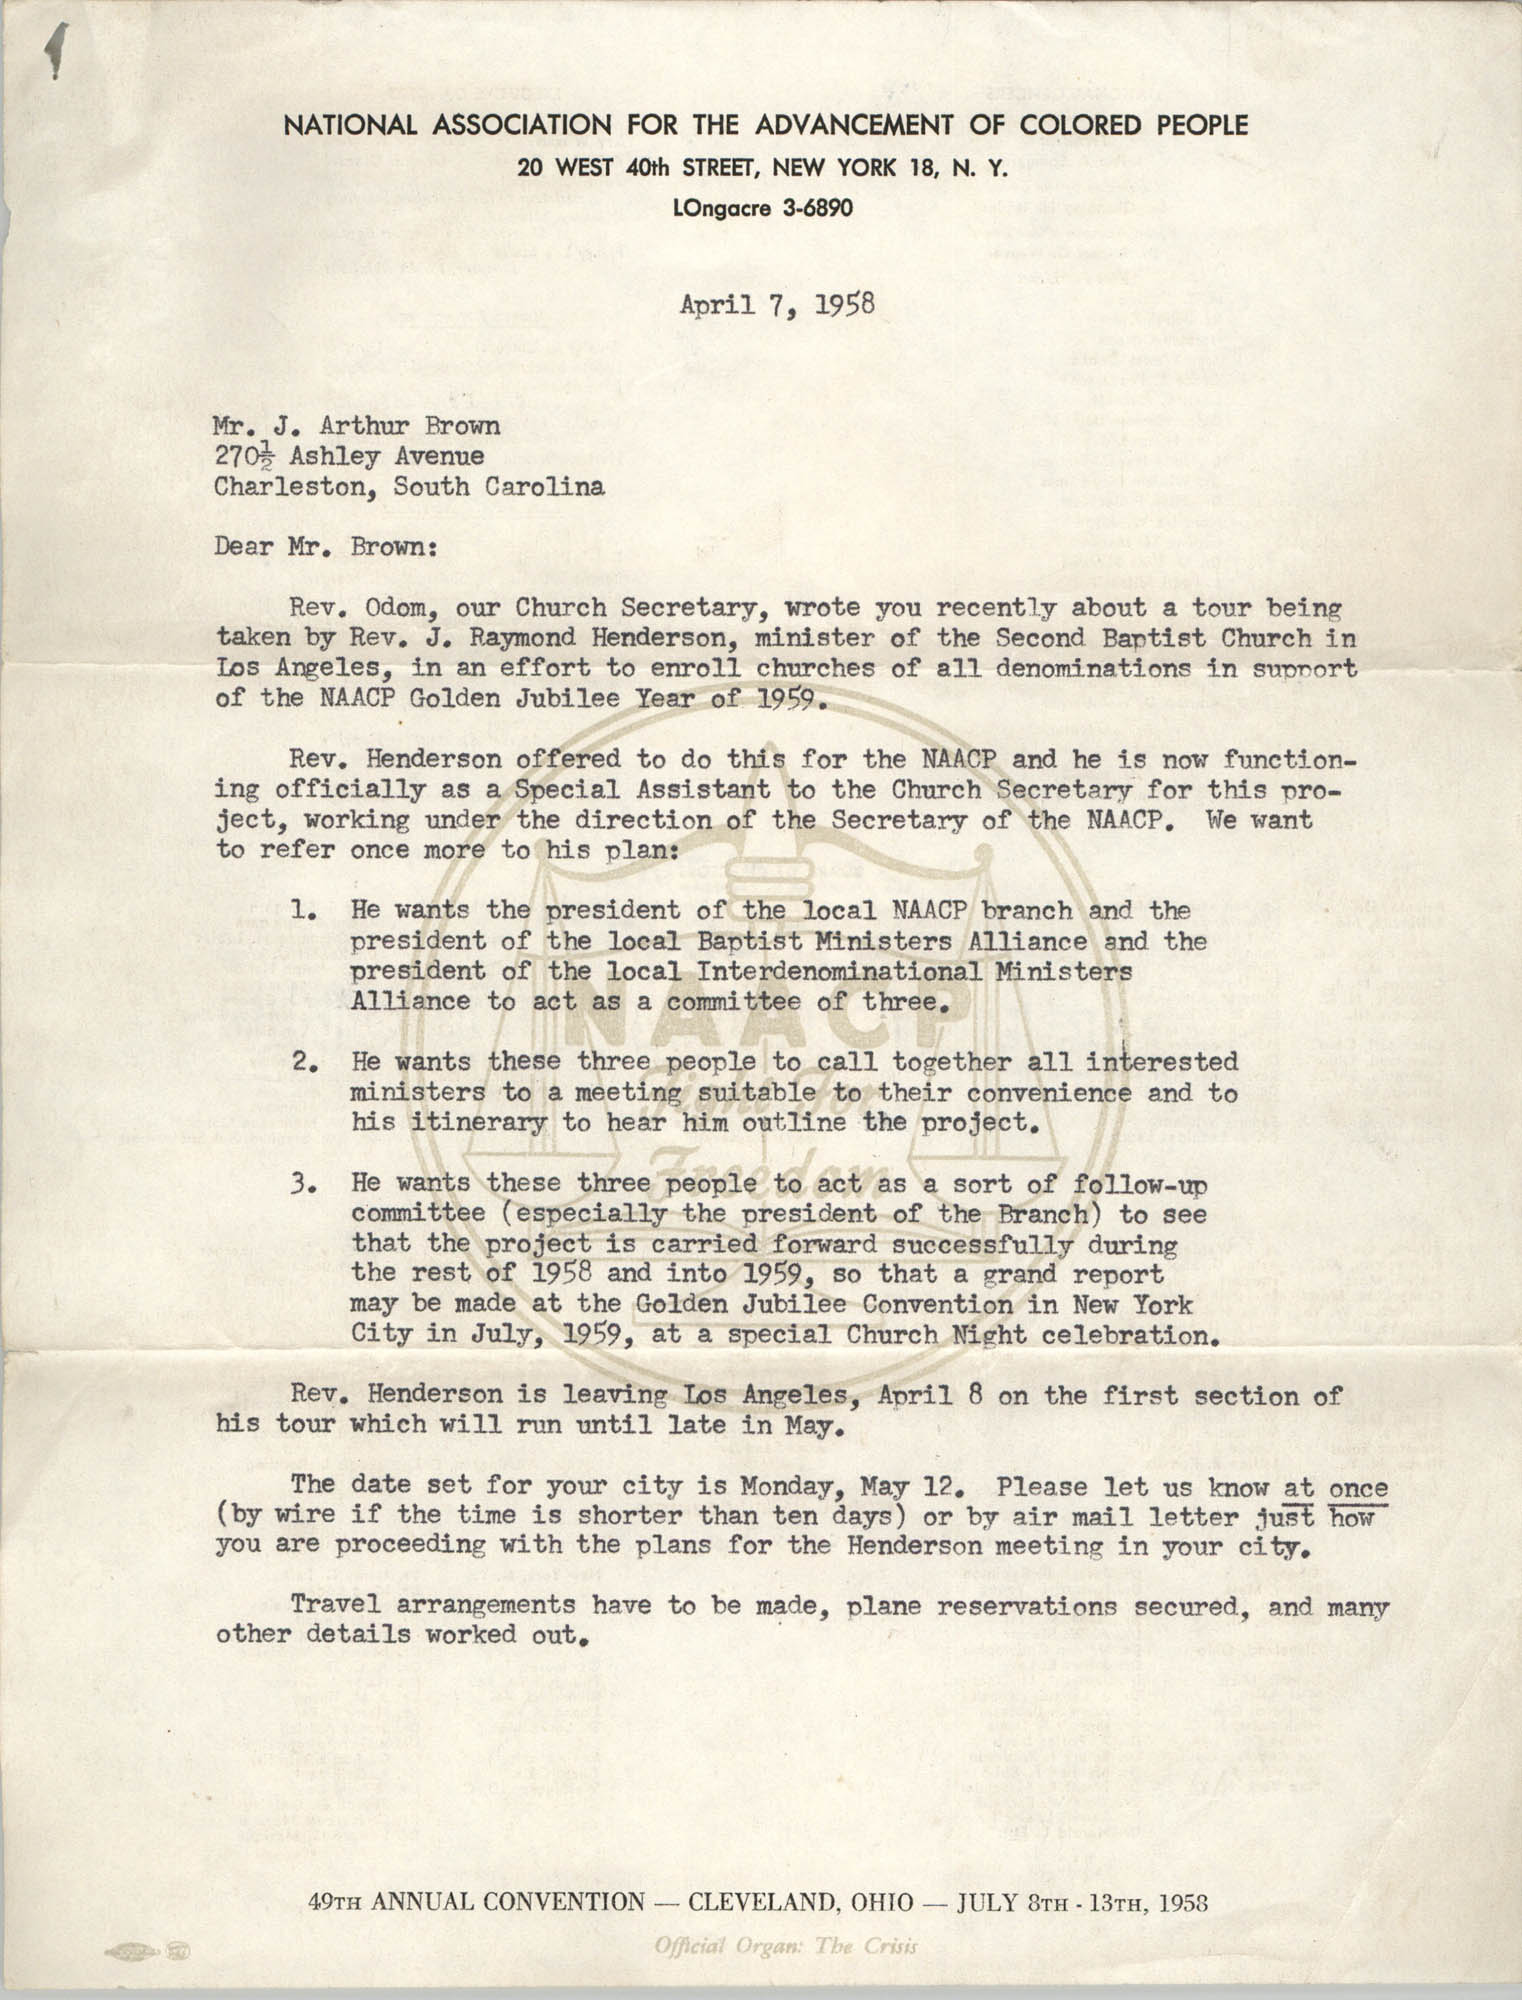 NAACP Memorandum, April 7, 1958